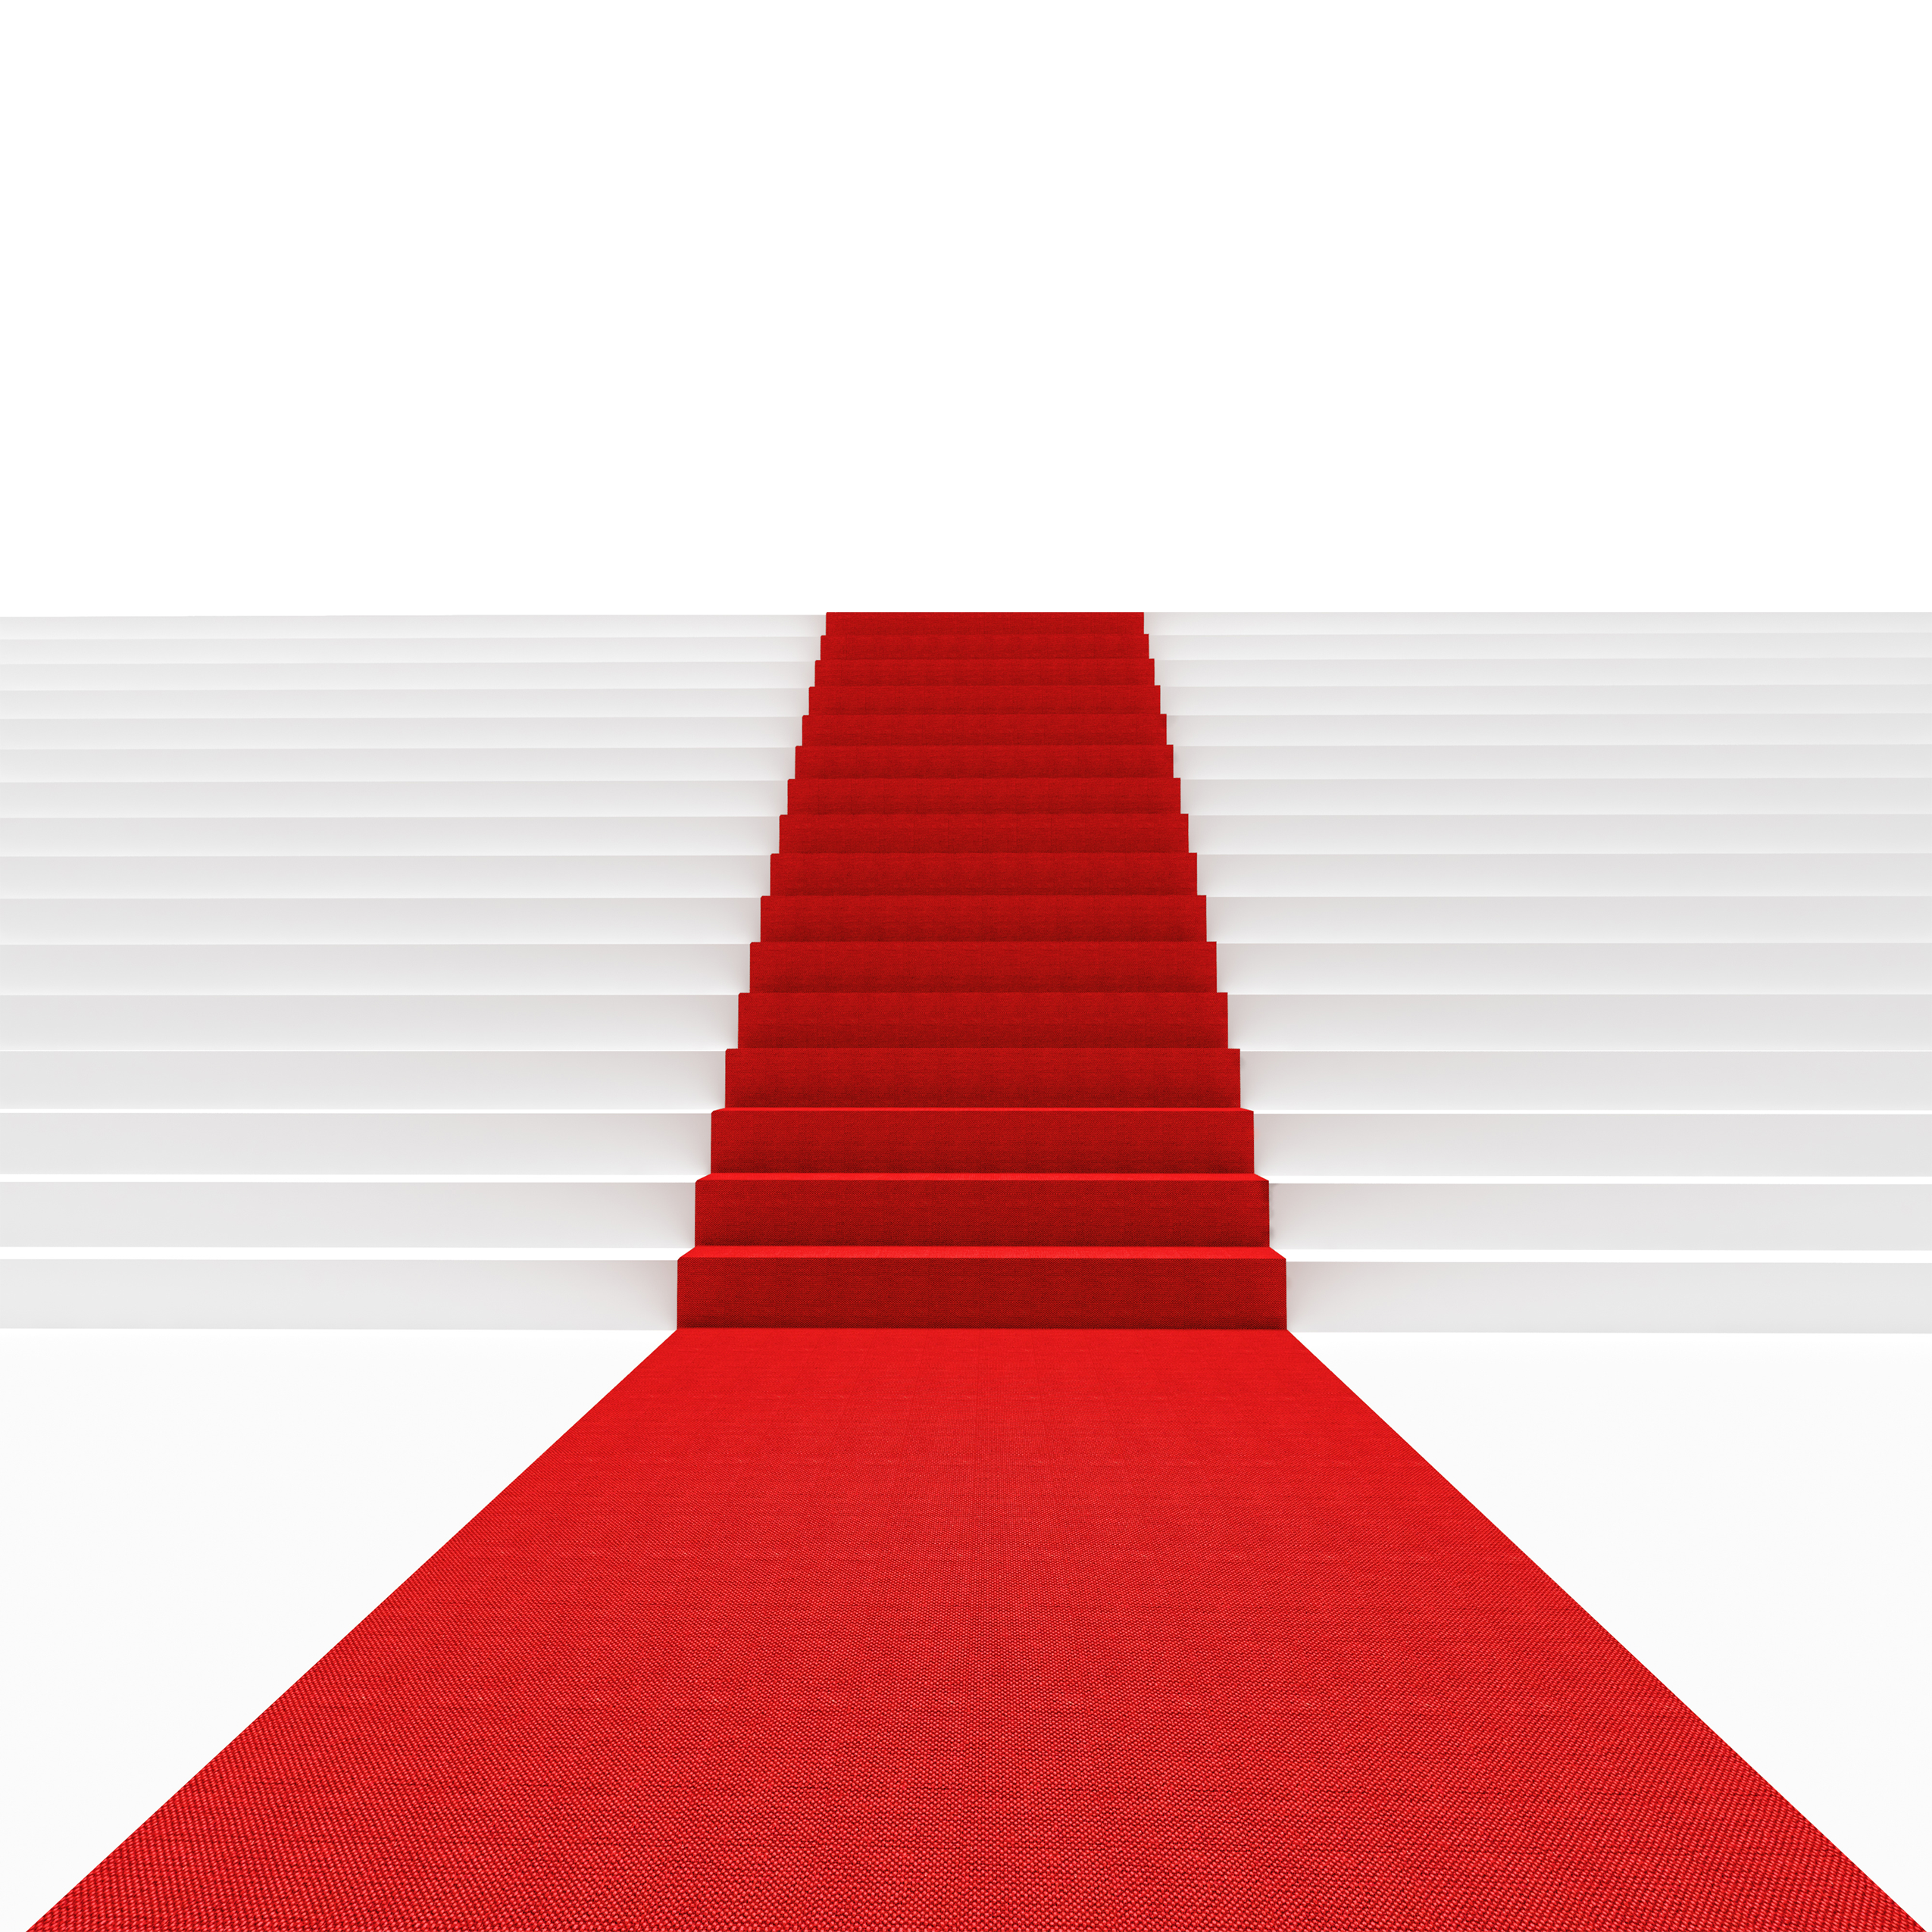 Red carpet background png. Steps free icons and